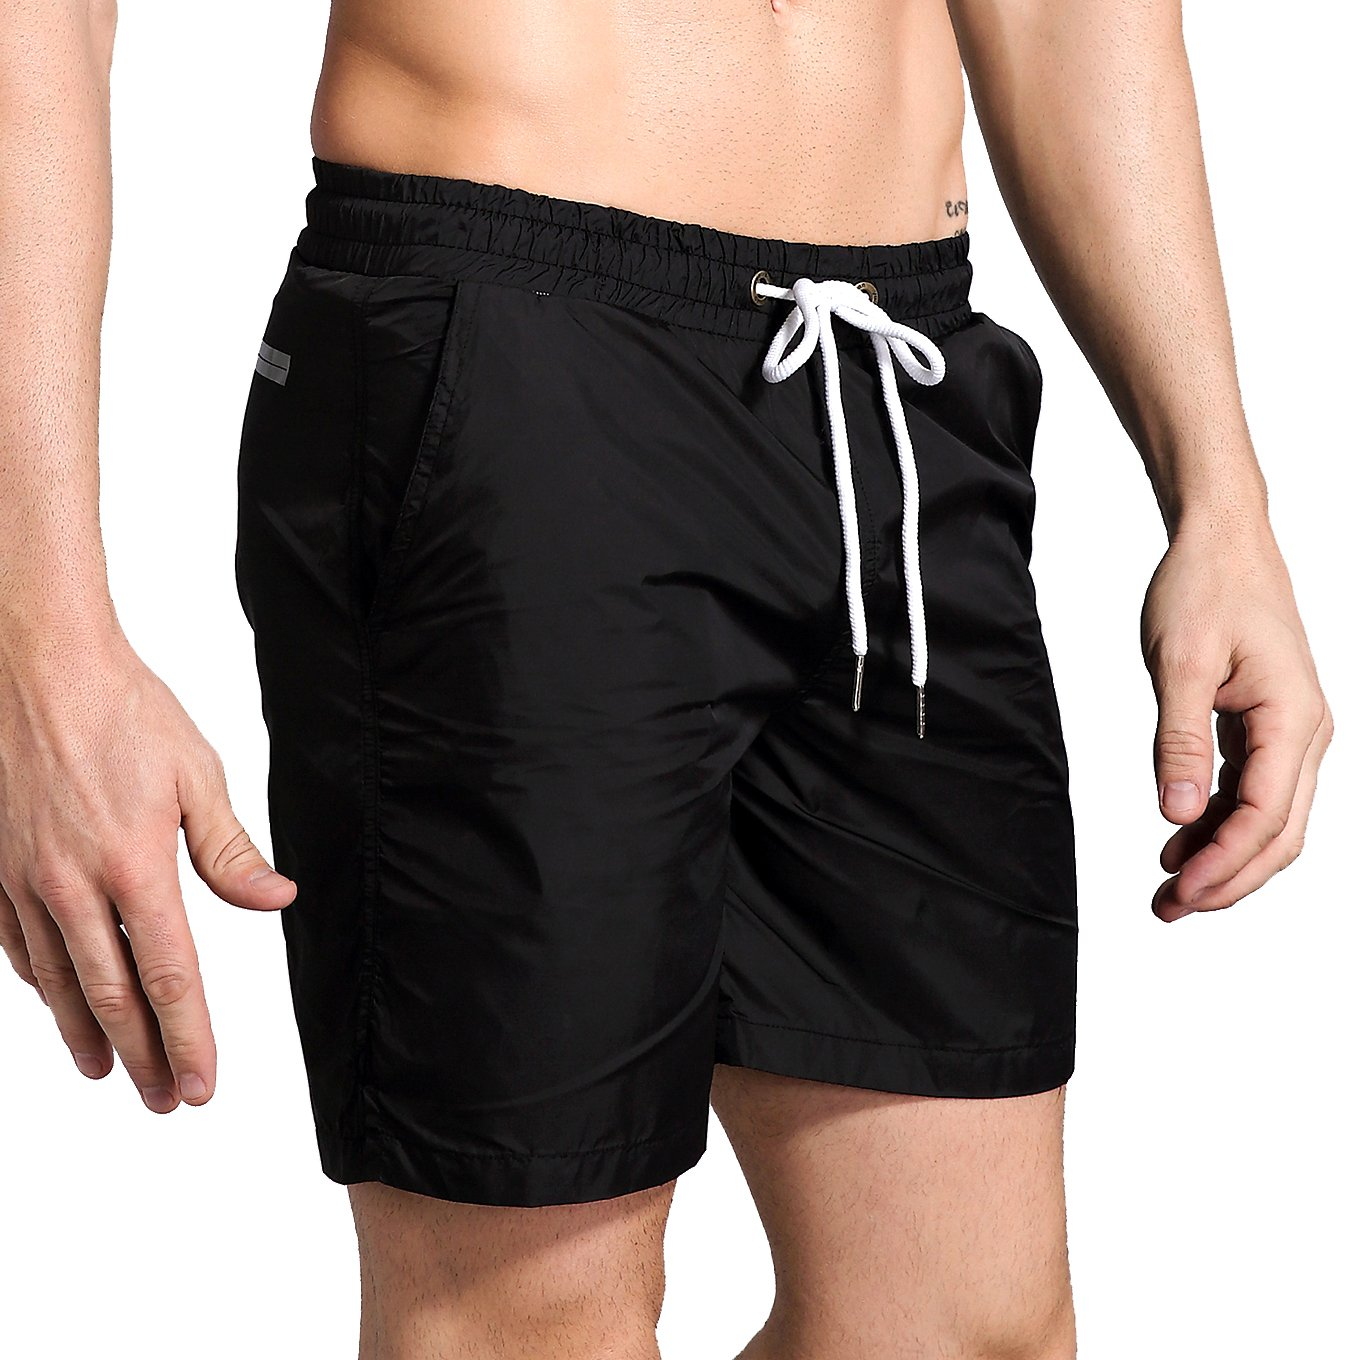 May Story Mens Quick Dry Swim Trunks Beach Shorts With Pockets For Running Swimming Surfing